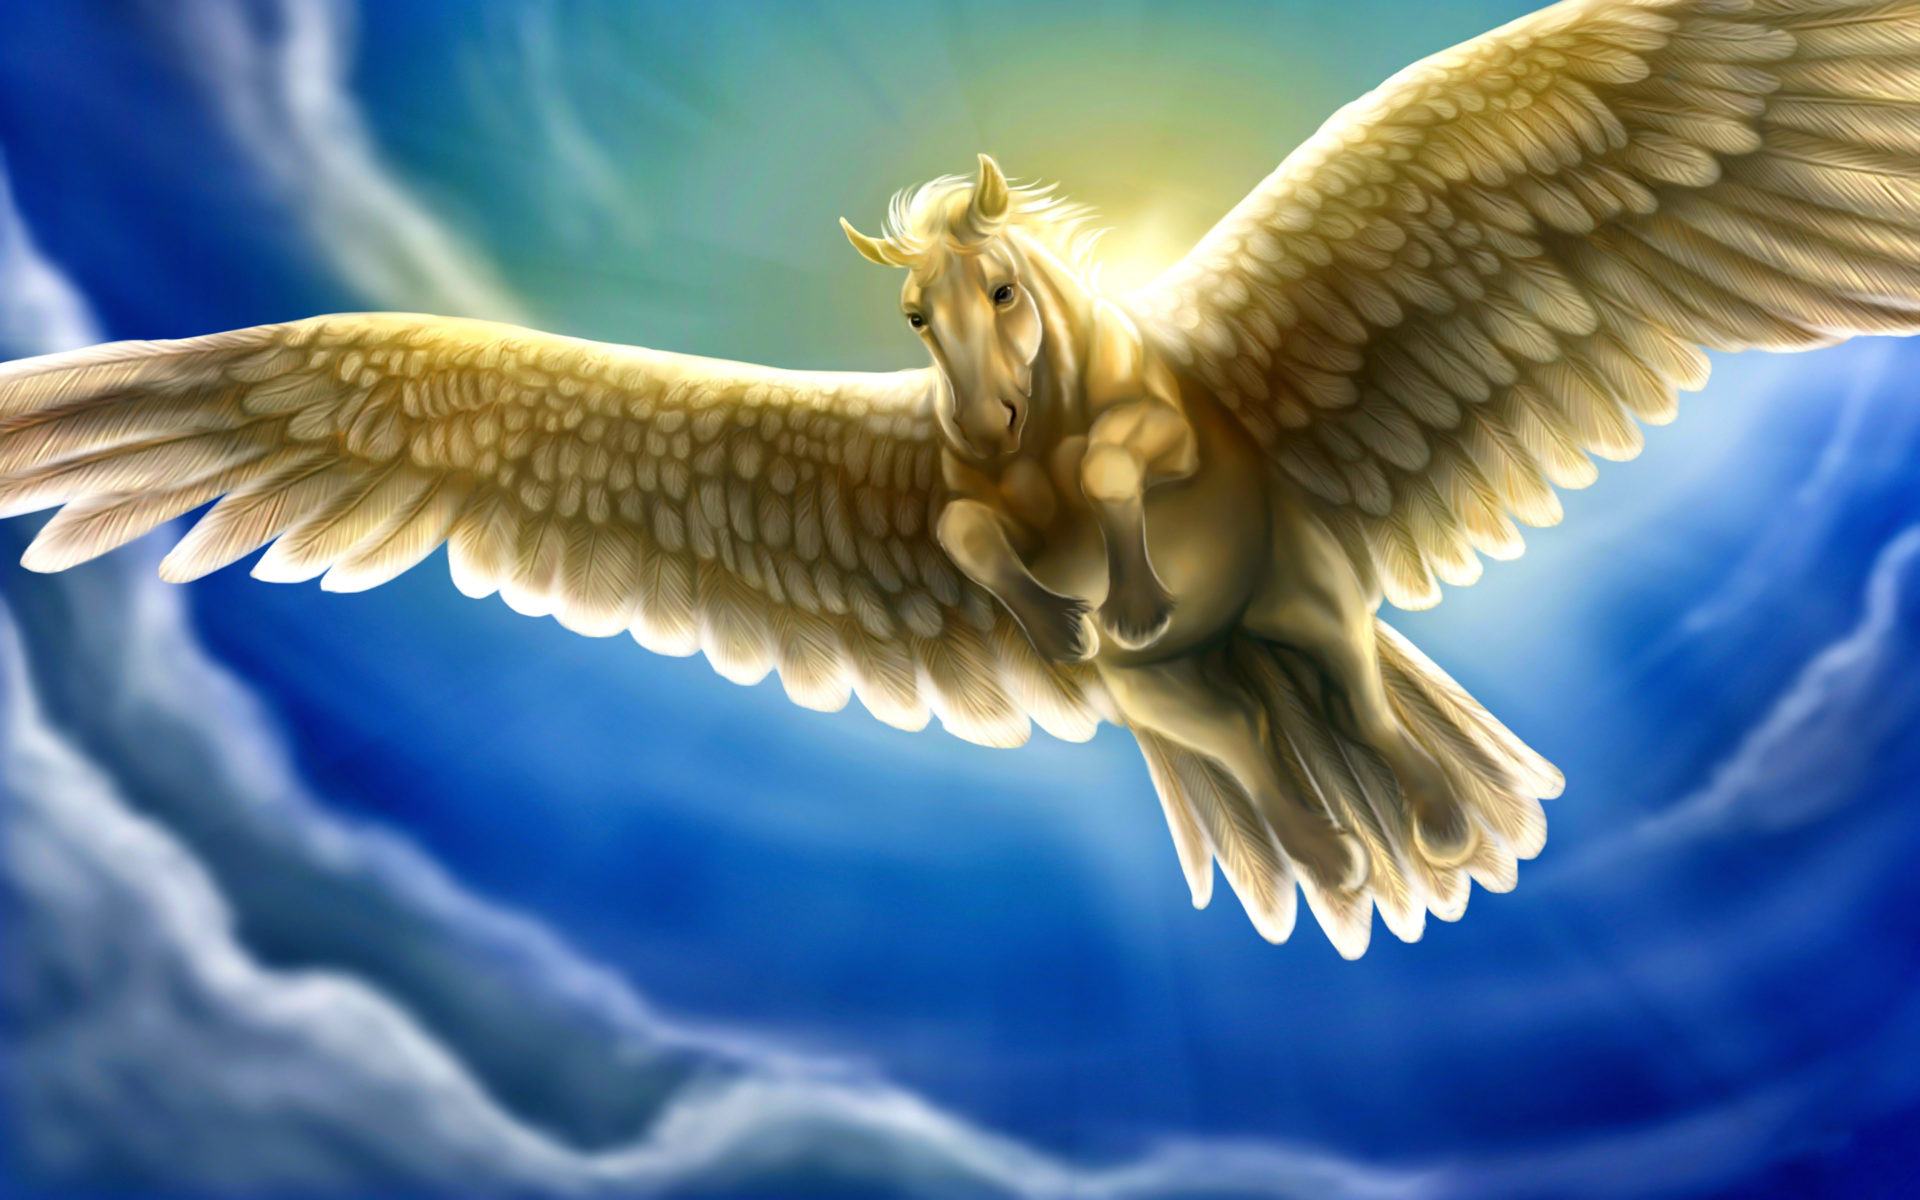 Cute Lock Screen Wallpapers For Ipad Heavenly White Horse With Wings Pegasus Fantasy Sky Blue